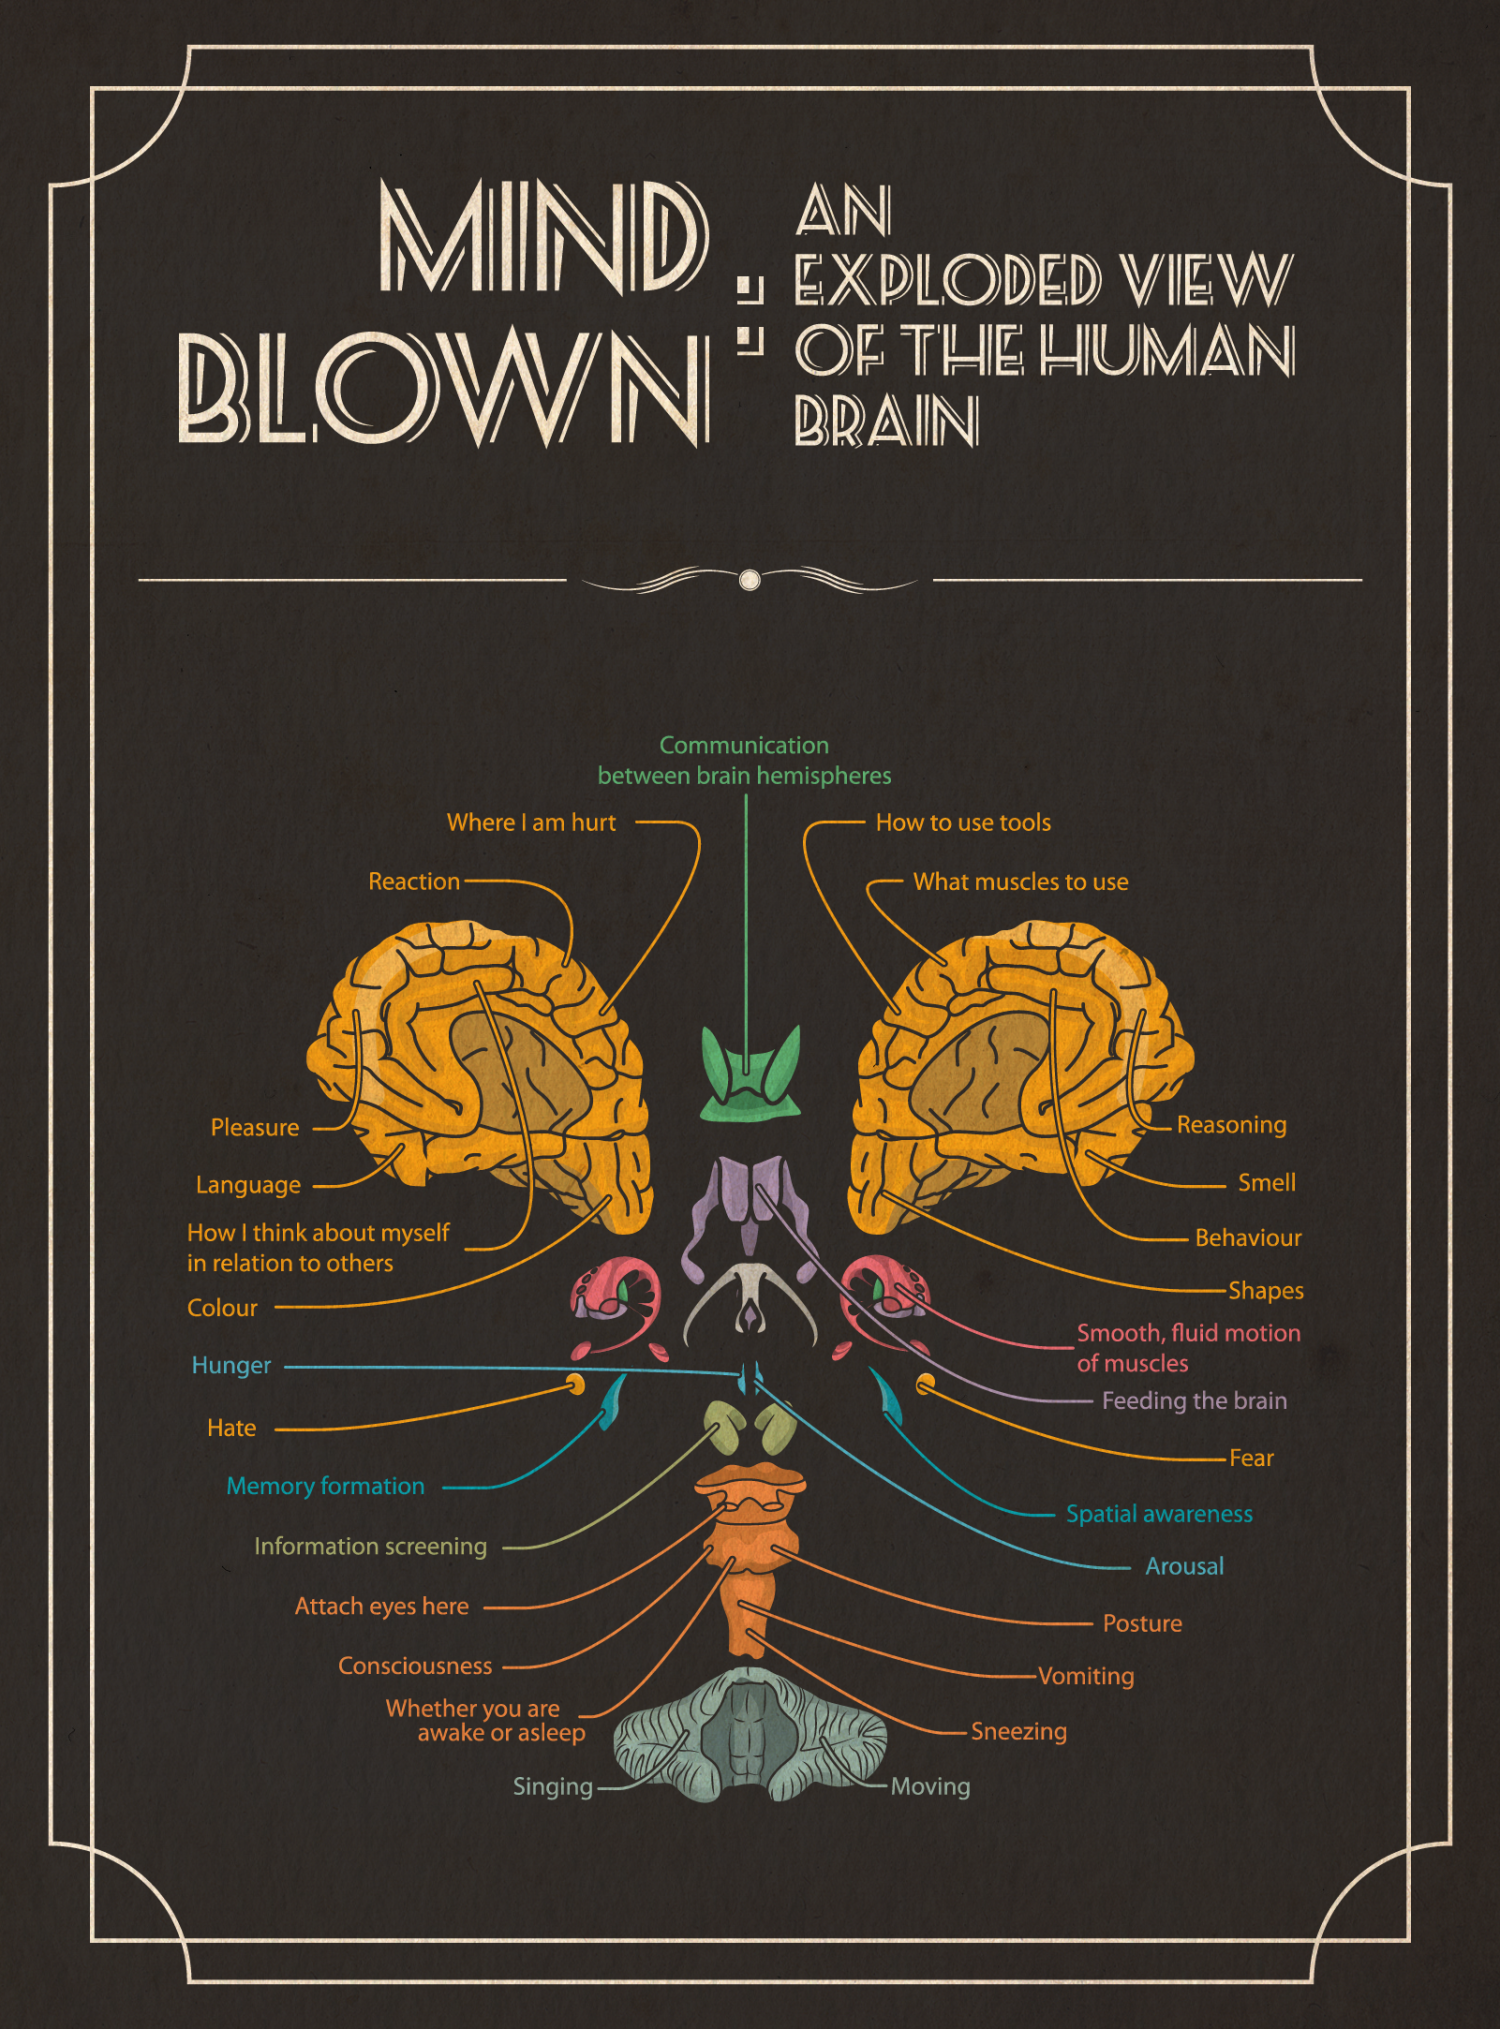 Mind Blown: An Exploded View of The Human Brain Infographic